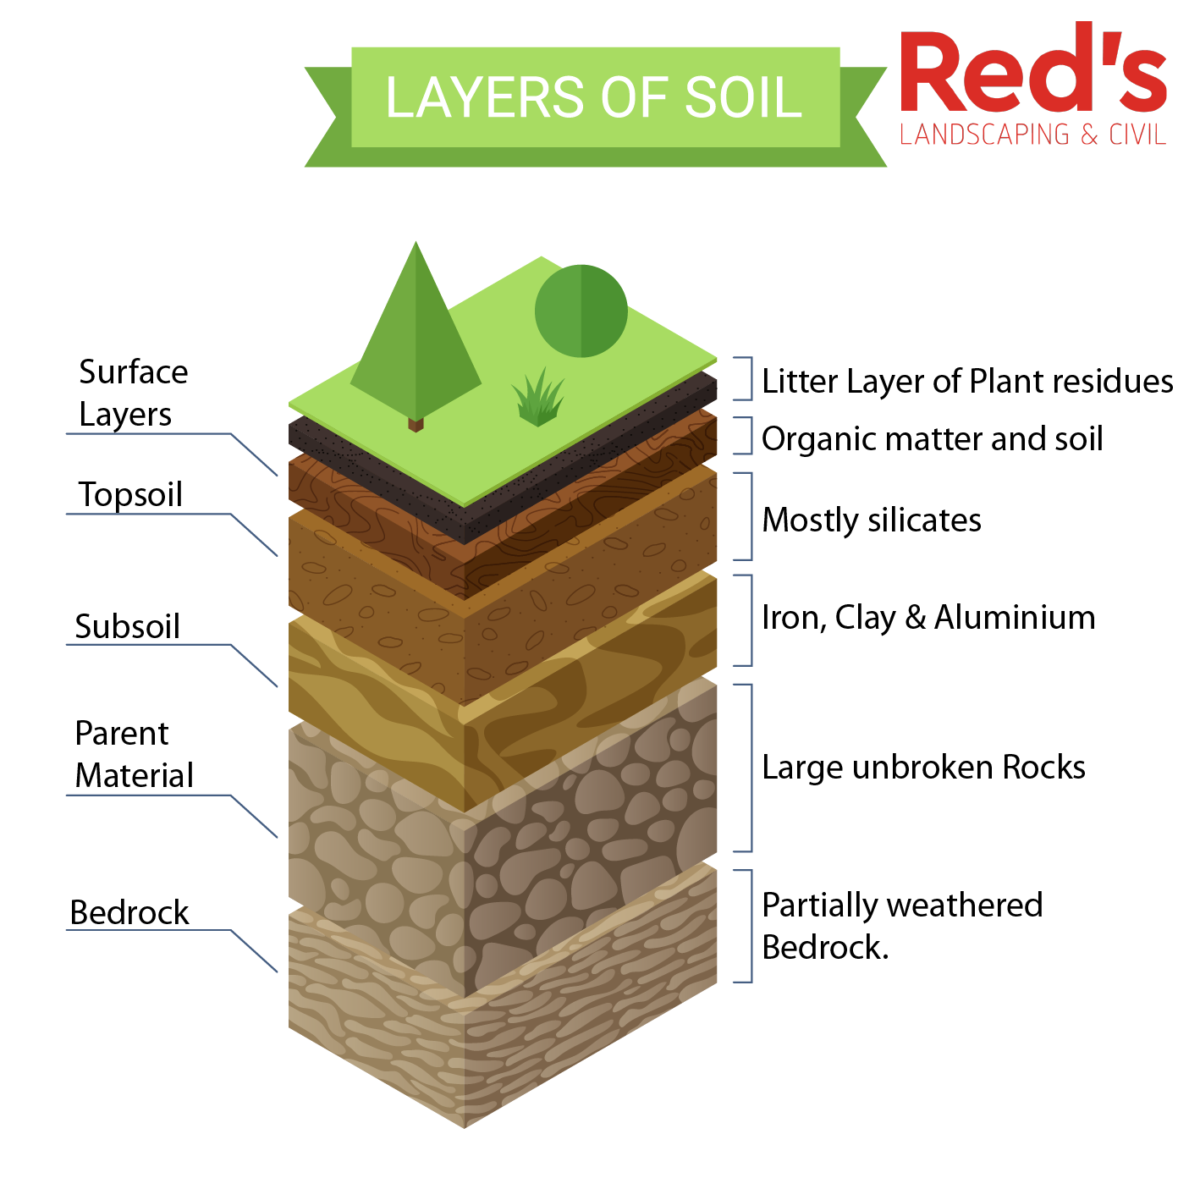 Soil Profile showing showing the topsoil layer.